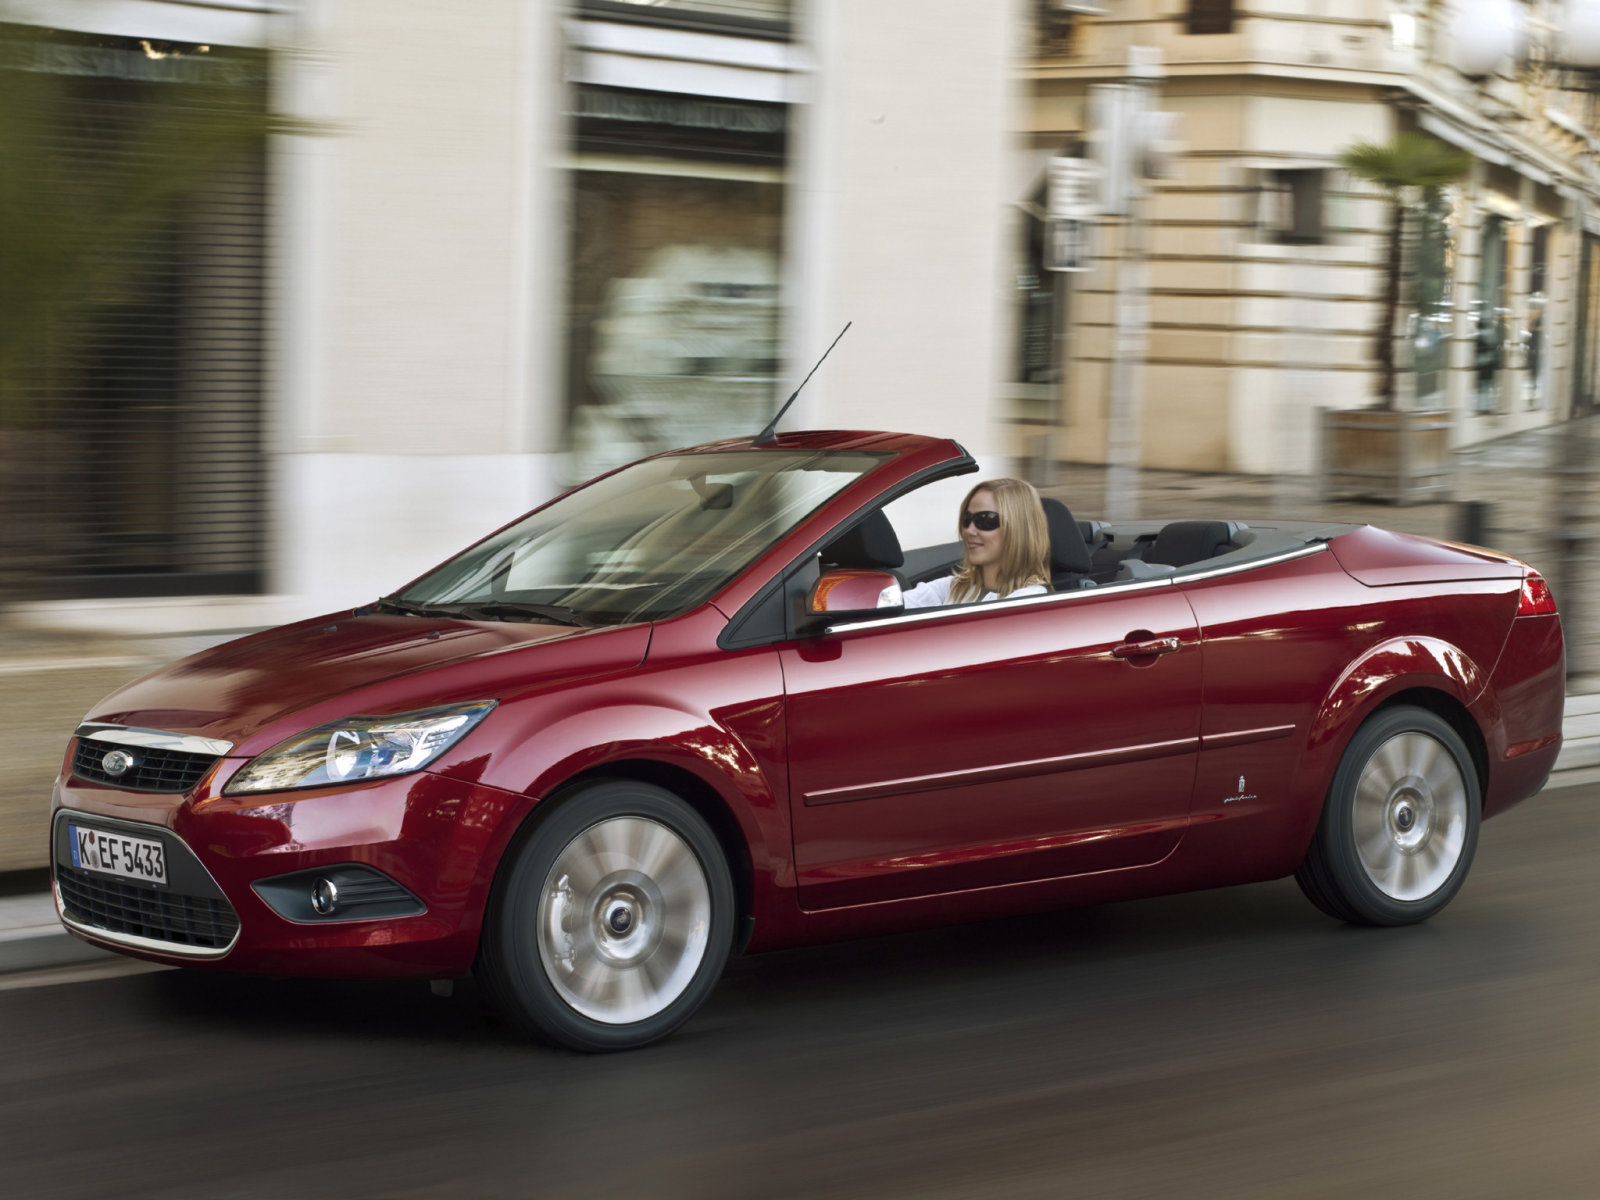 Ford cabriolet 2014 photo - 6